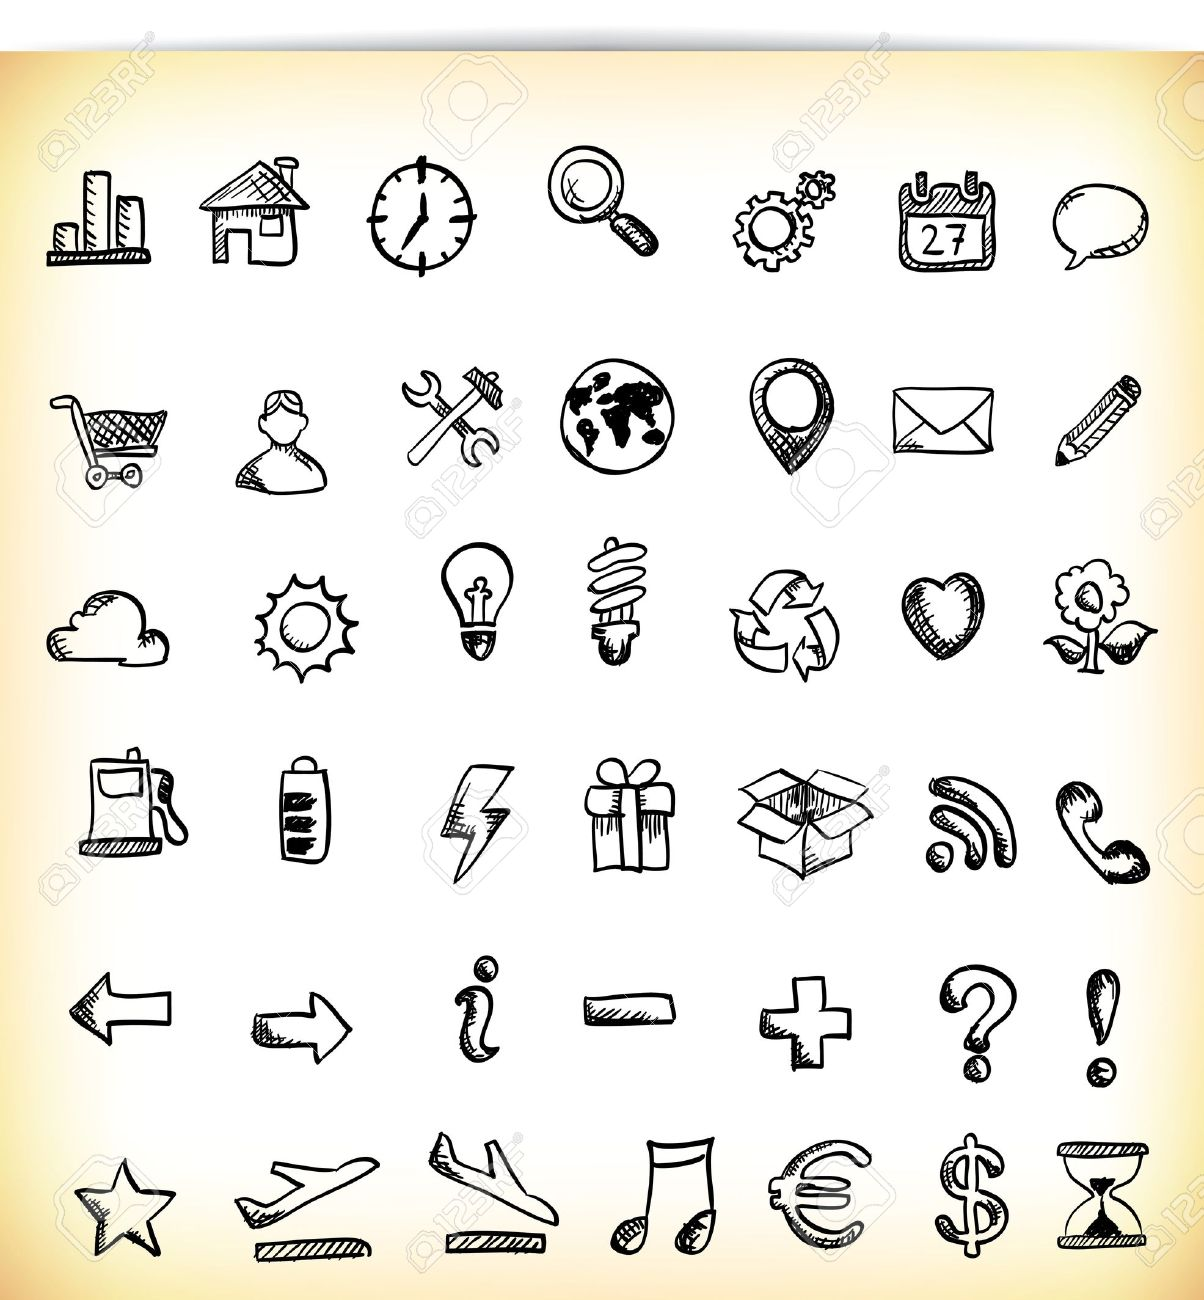 Set of 42 hand-drawn icon in different themes, like work, business, ecology, time and symbols Stock Vector - 17858761